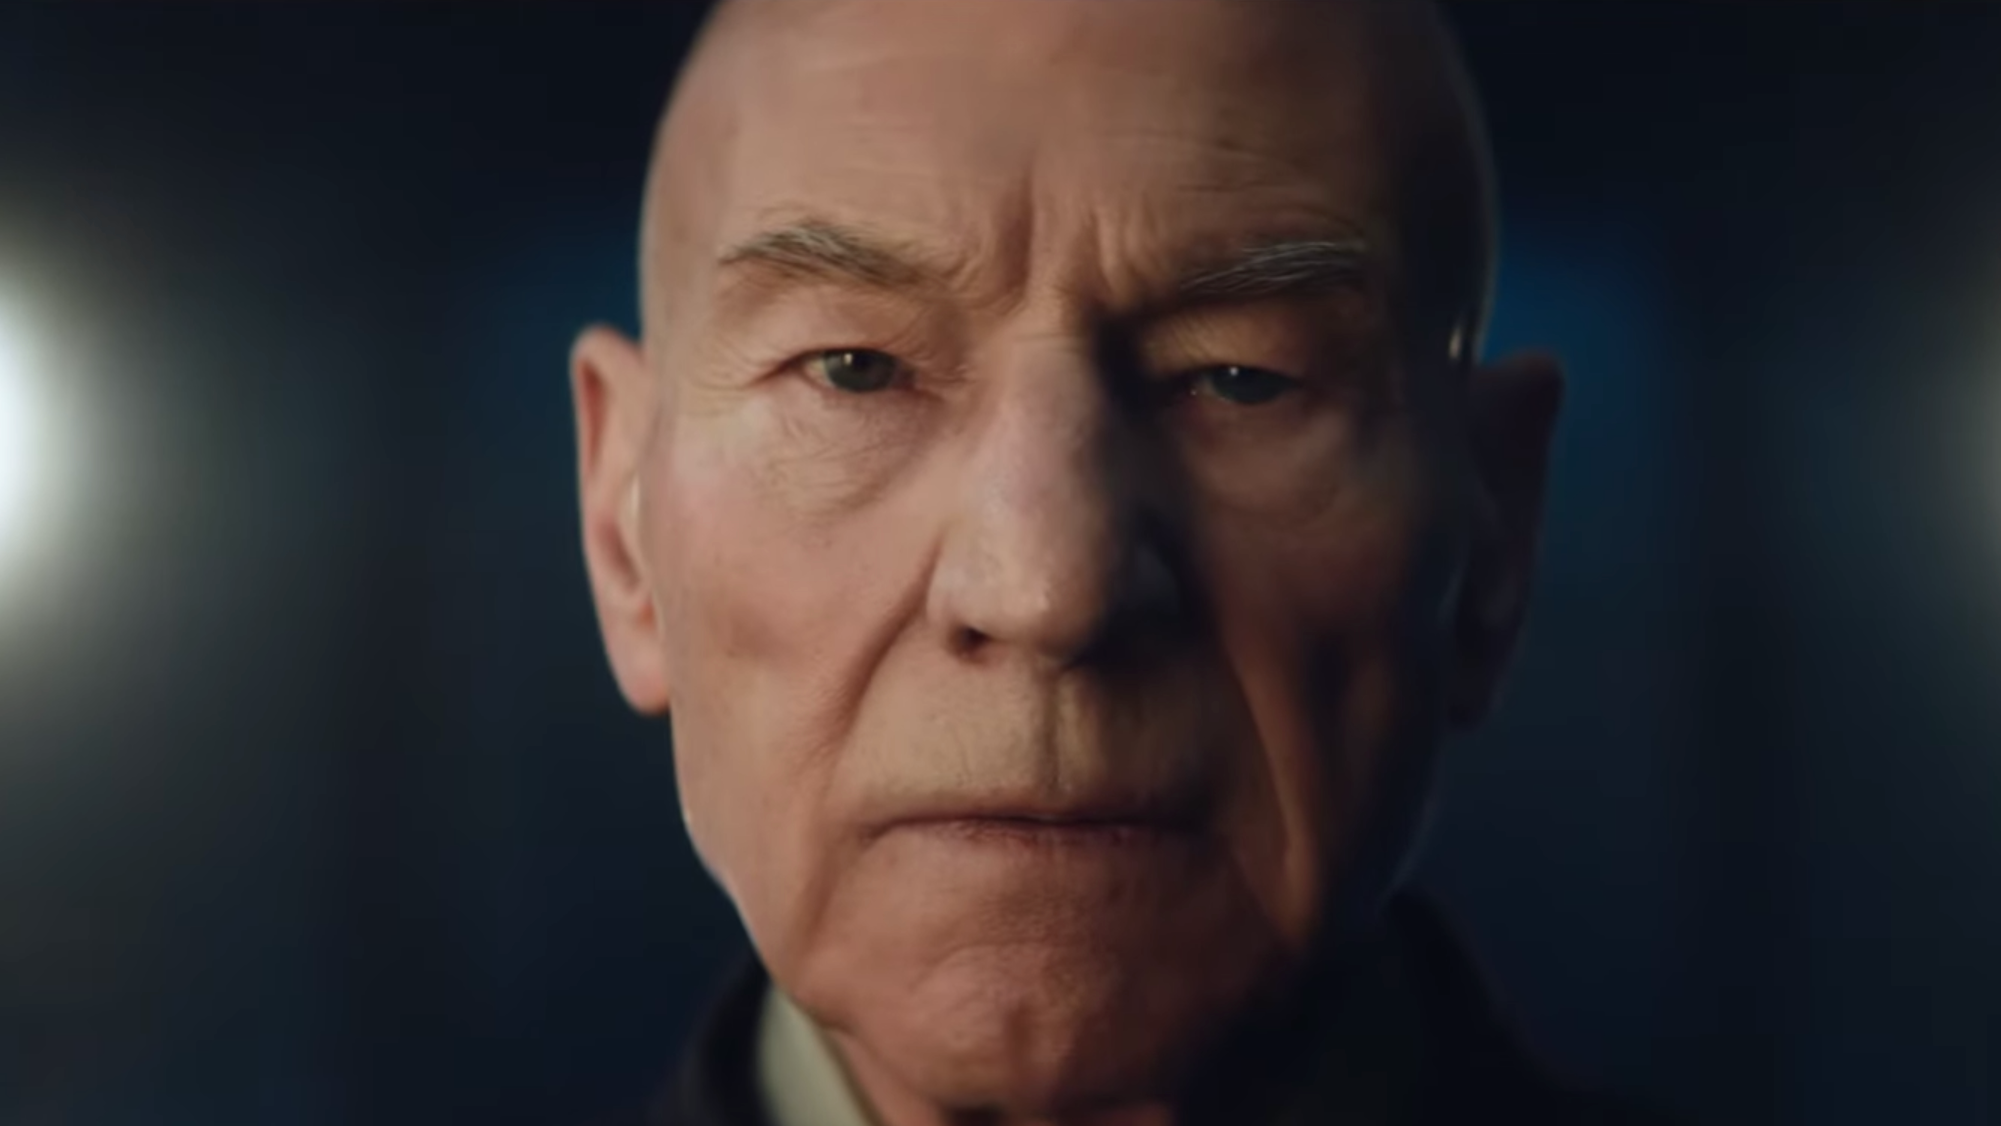 Star Trek: Picard's First Teaser Hints At Jean-Luc's Tragic Place In Starfleet History